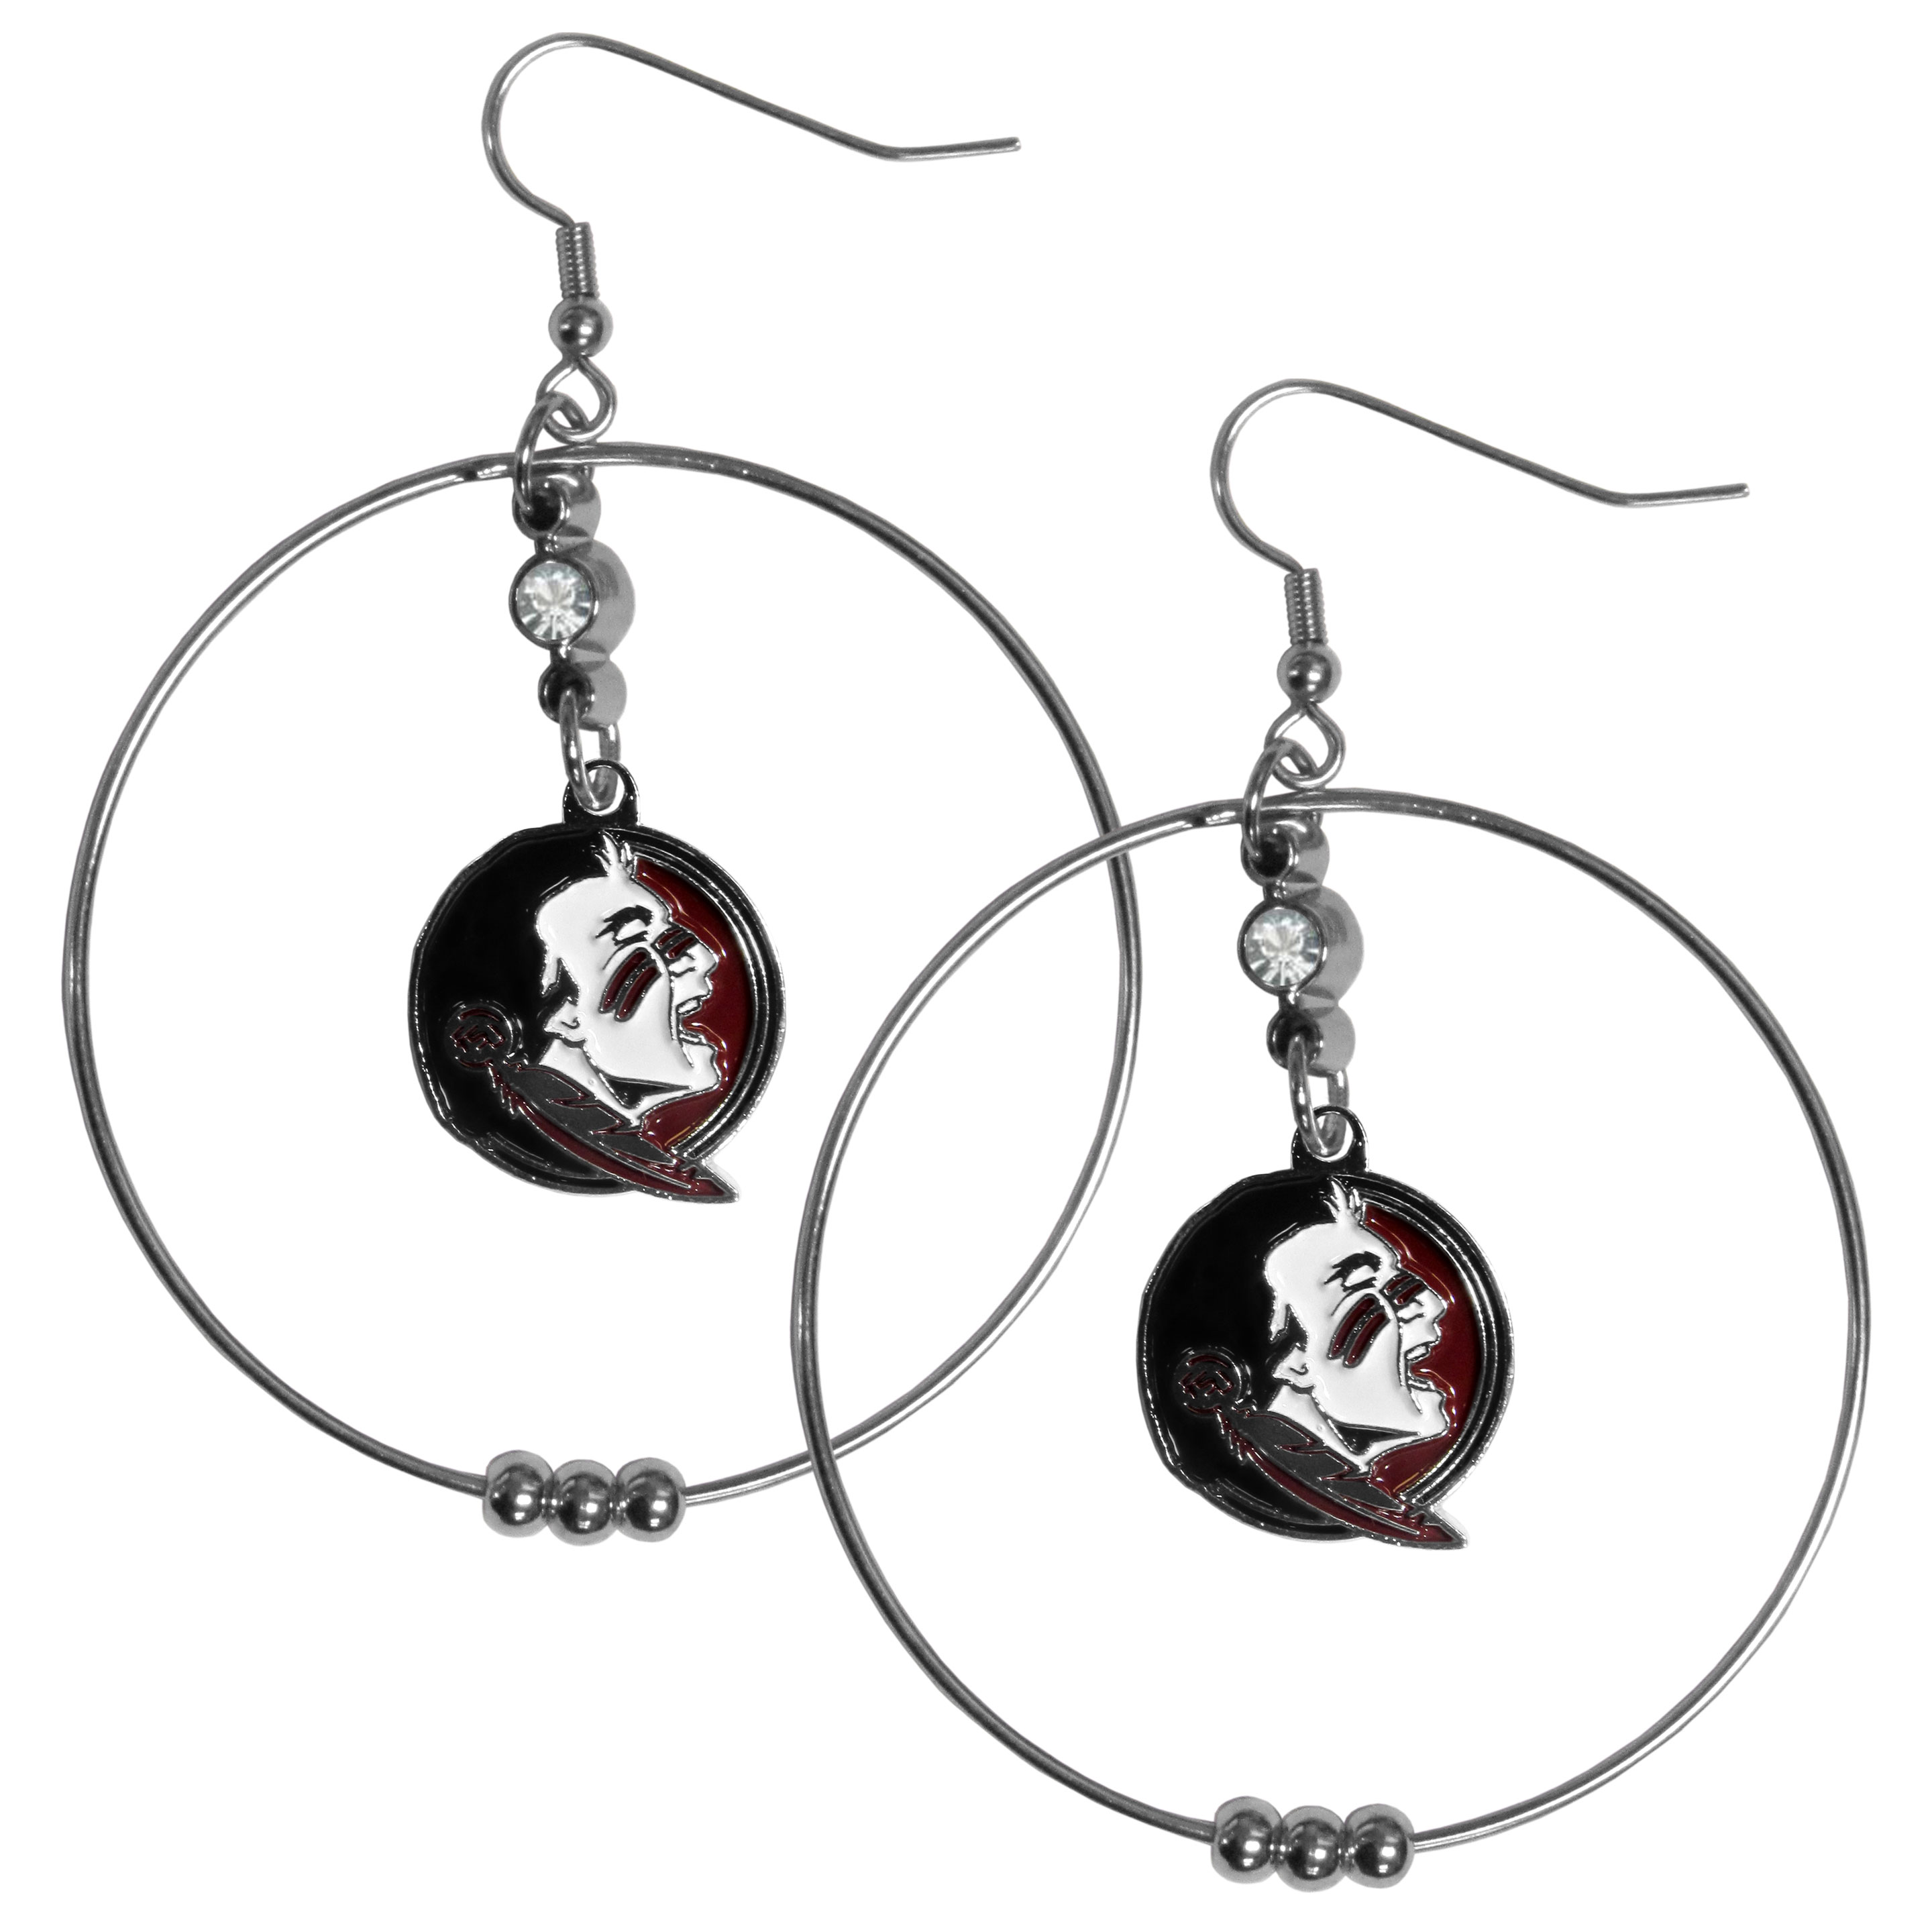 Florida St. Seminoles 2 Inch Hoop Earrings - Our large hoop earrings have a fully cast and enameled Florida St. Seminoles charm with enameled detail and a high polish nickel free chrome finish and rhinestone access. Hypoallergenic fishhook posts.